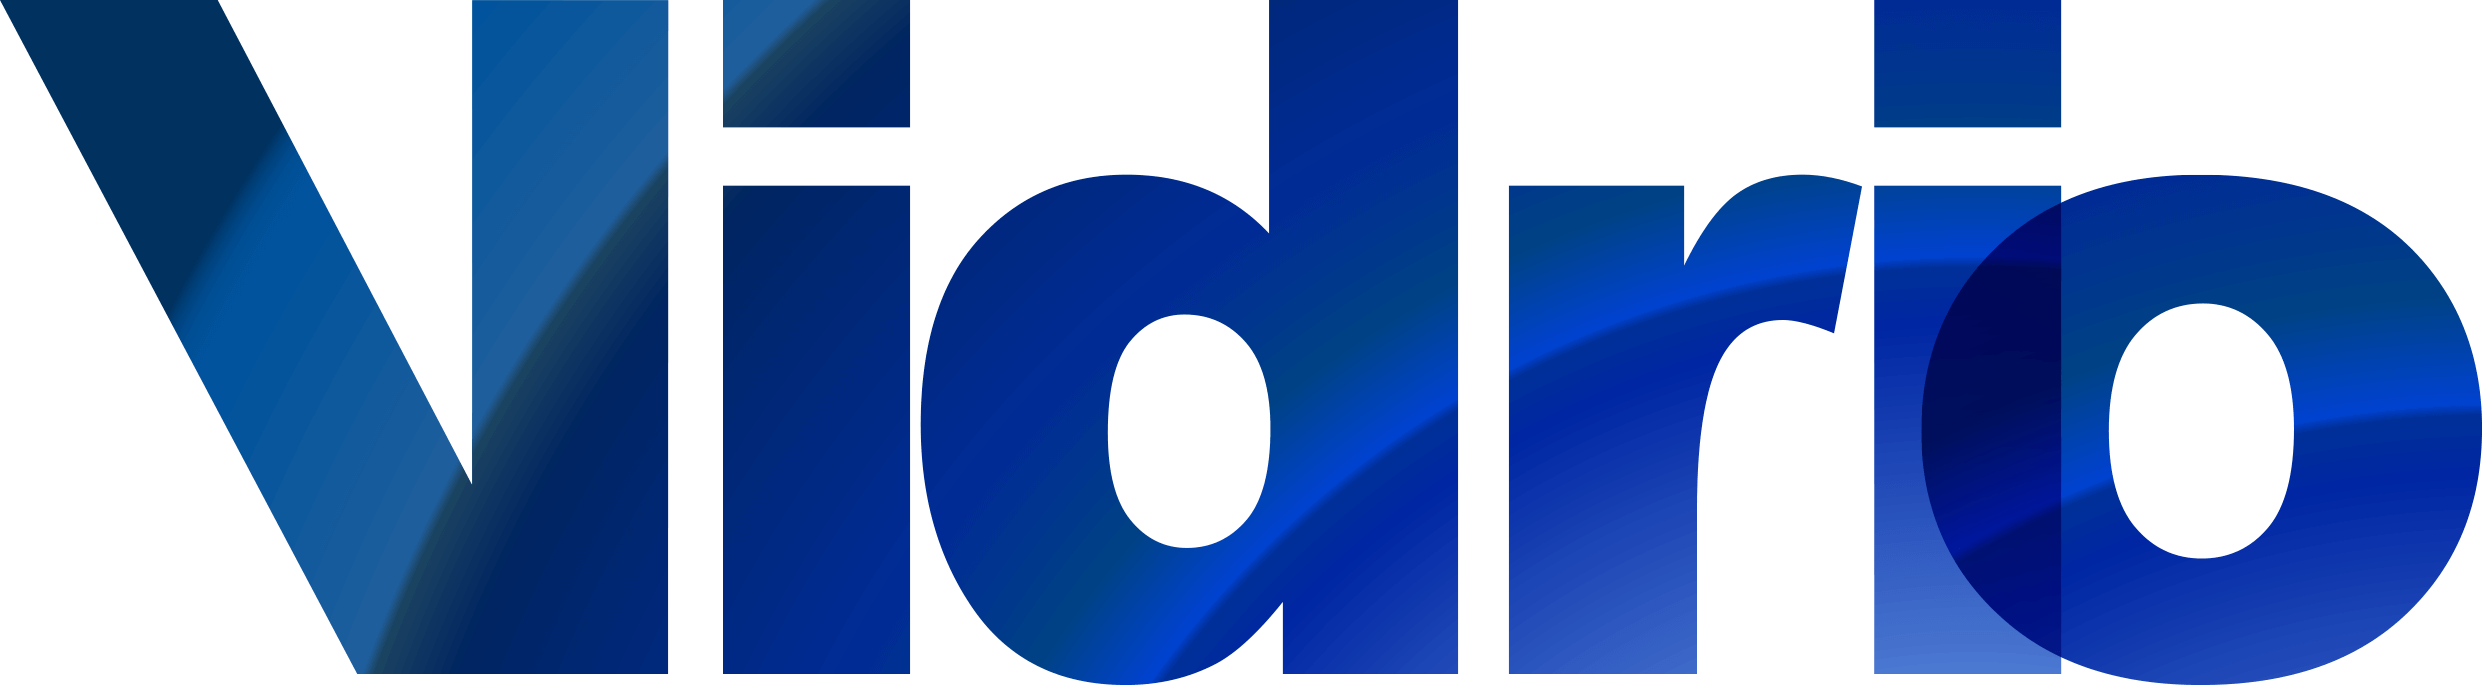 Vidrio Financial LLC logo